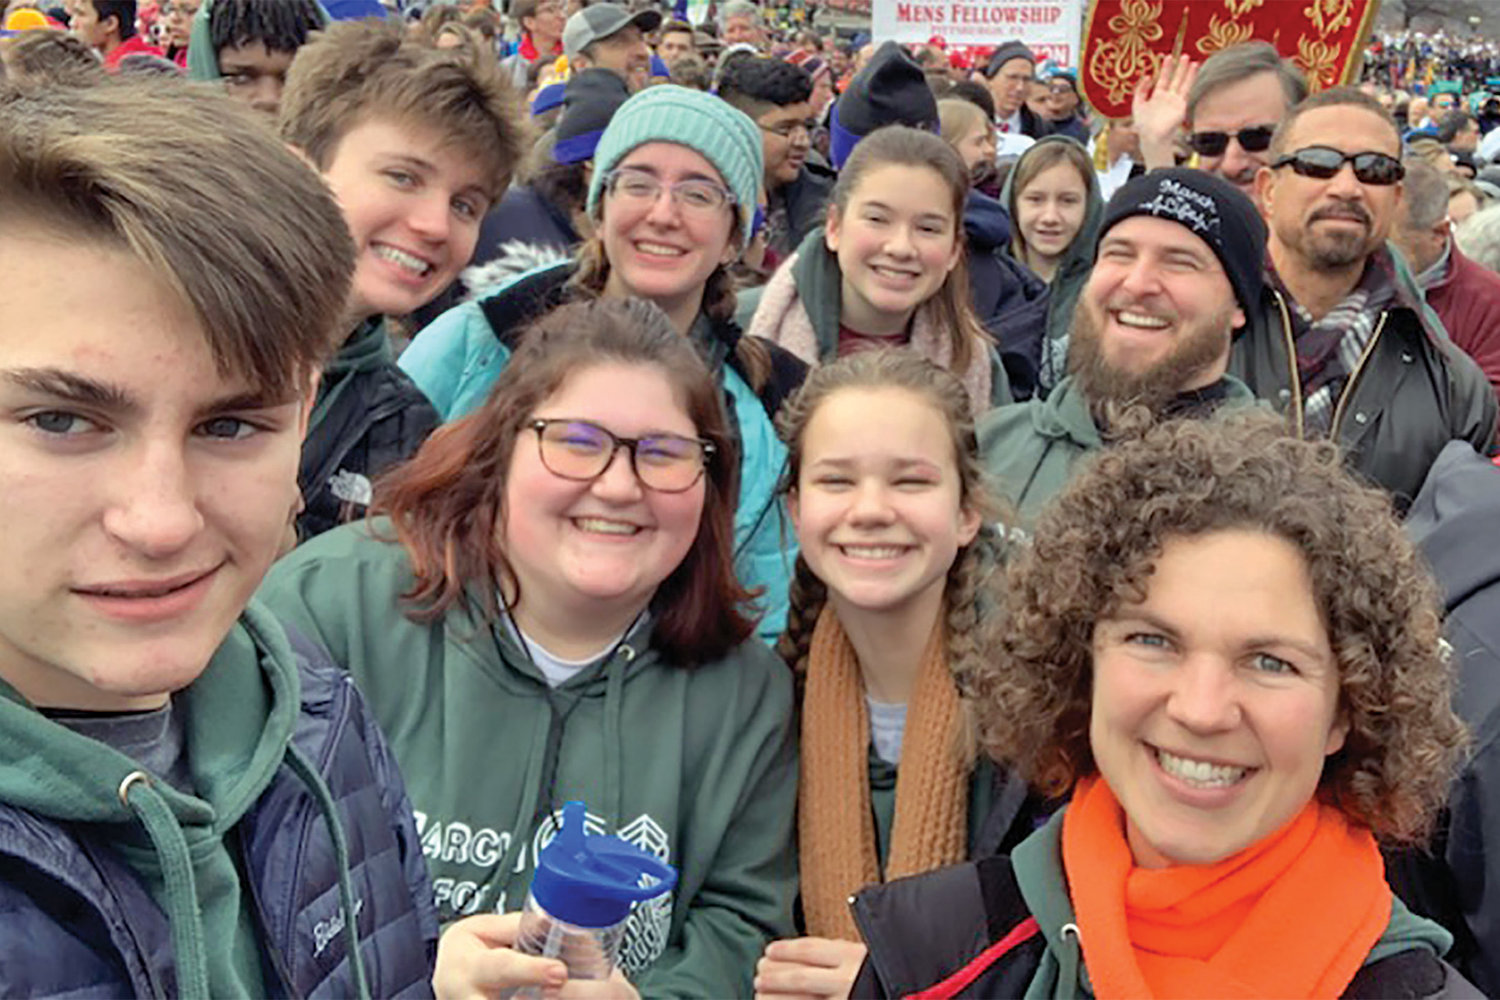 Representatives of Fr. Tolton Regional Catholic High School in Columbia were among the 290 people from the Jefferson City diocese who were on pilgrimage to Washington, D.C., for the National Mass and Prayer Vigil for Life and the 47th annual March for Life.